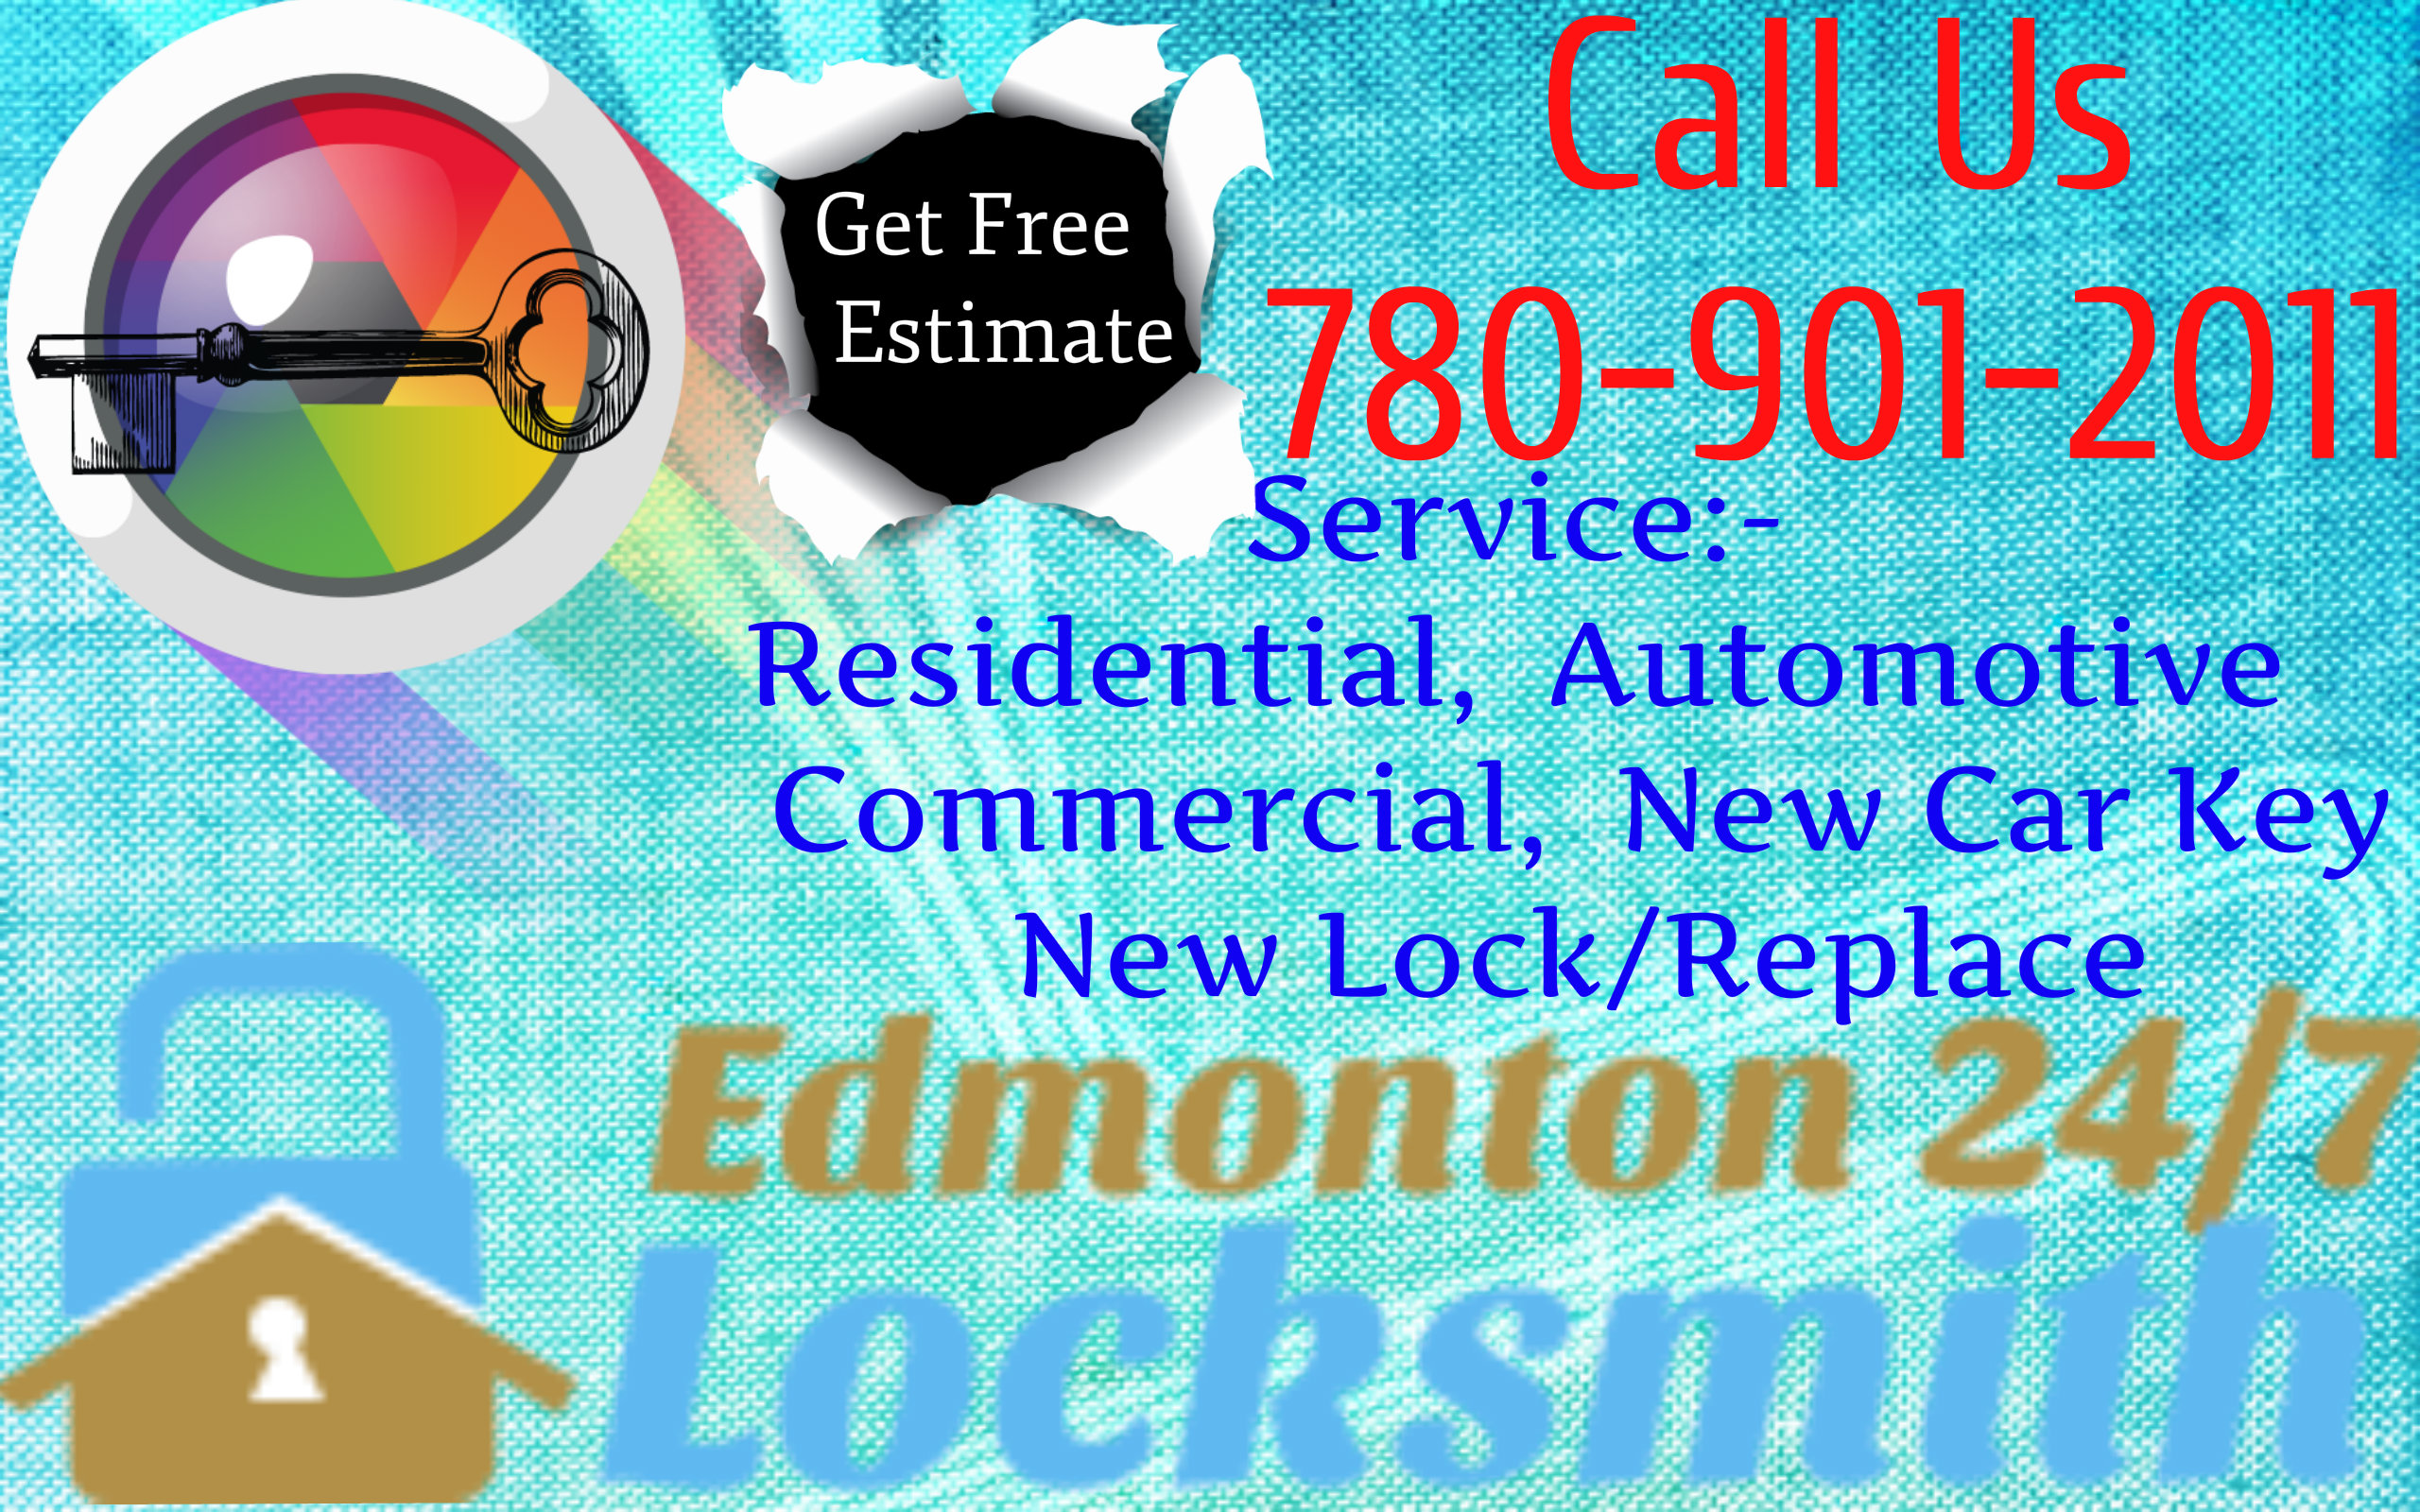 Edmonton Hour Locksmith Services | Free Images at Clker.com - vector ...